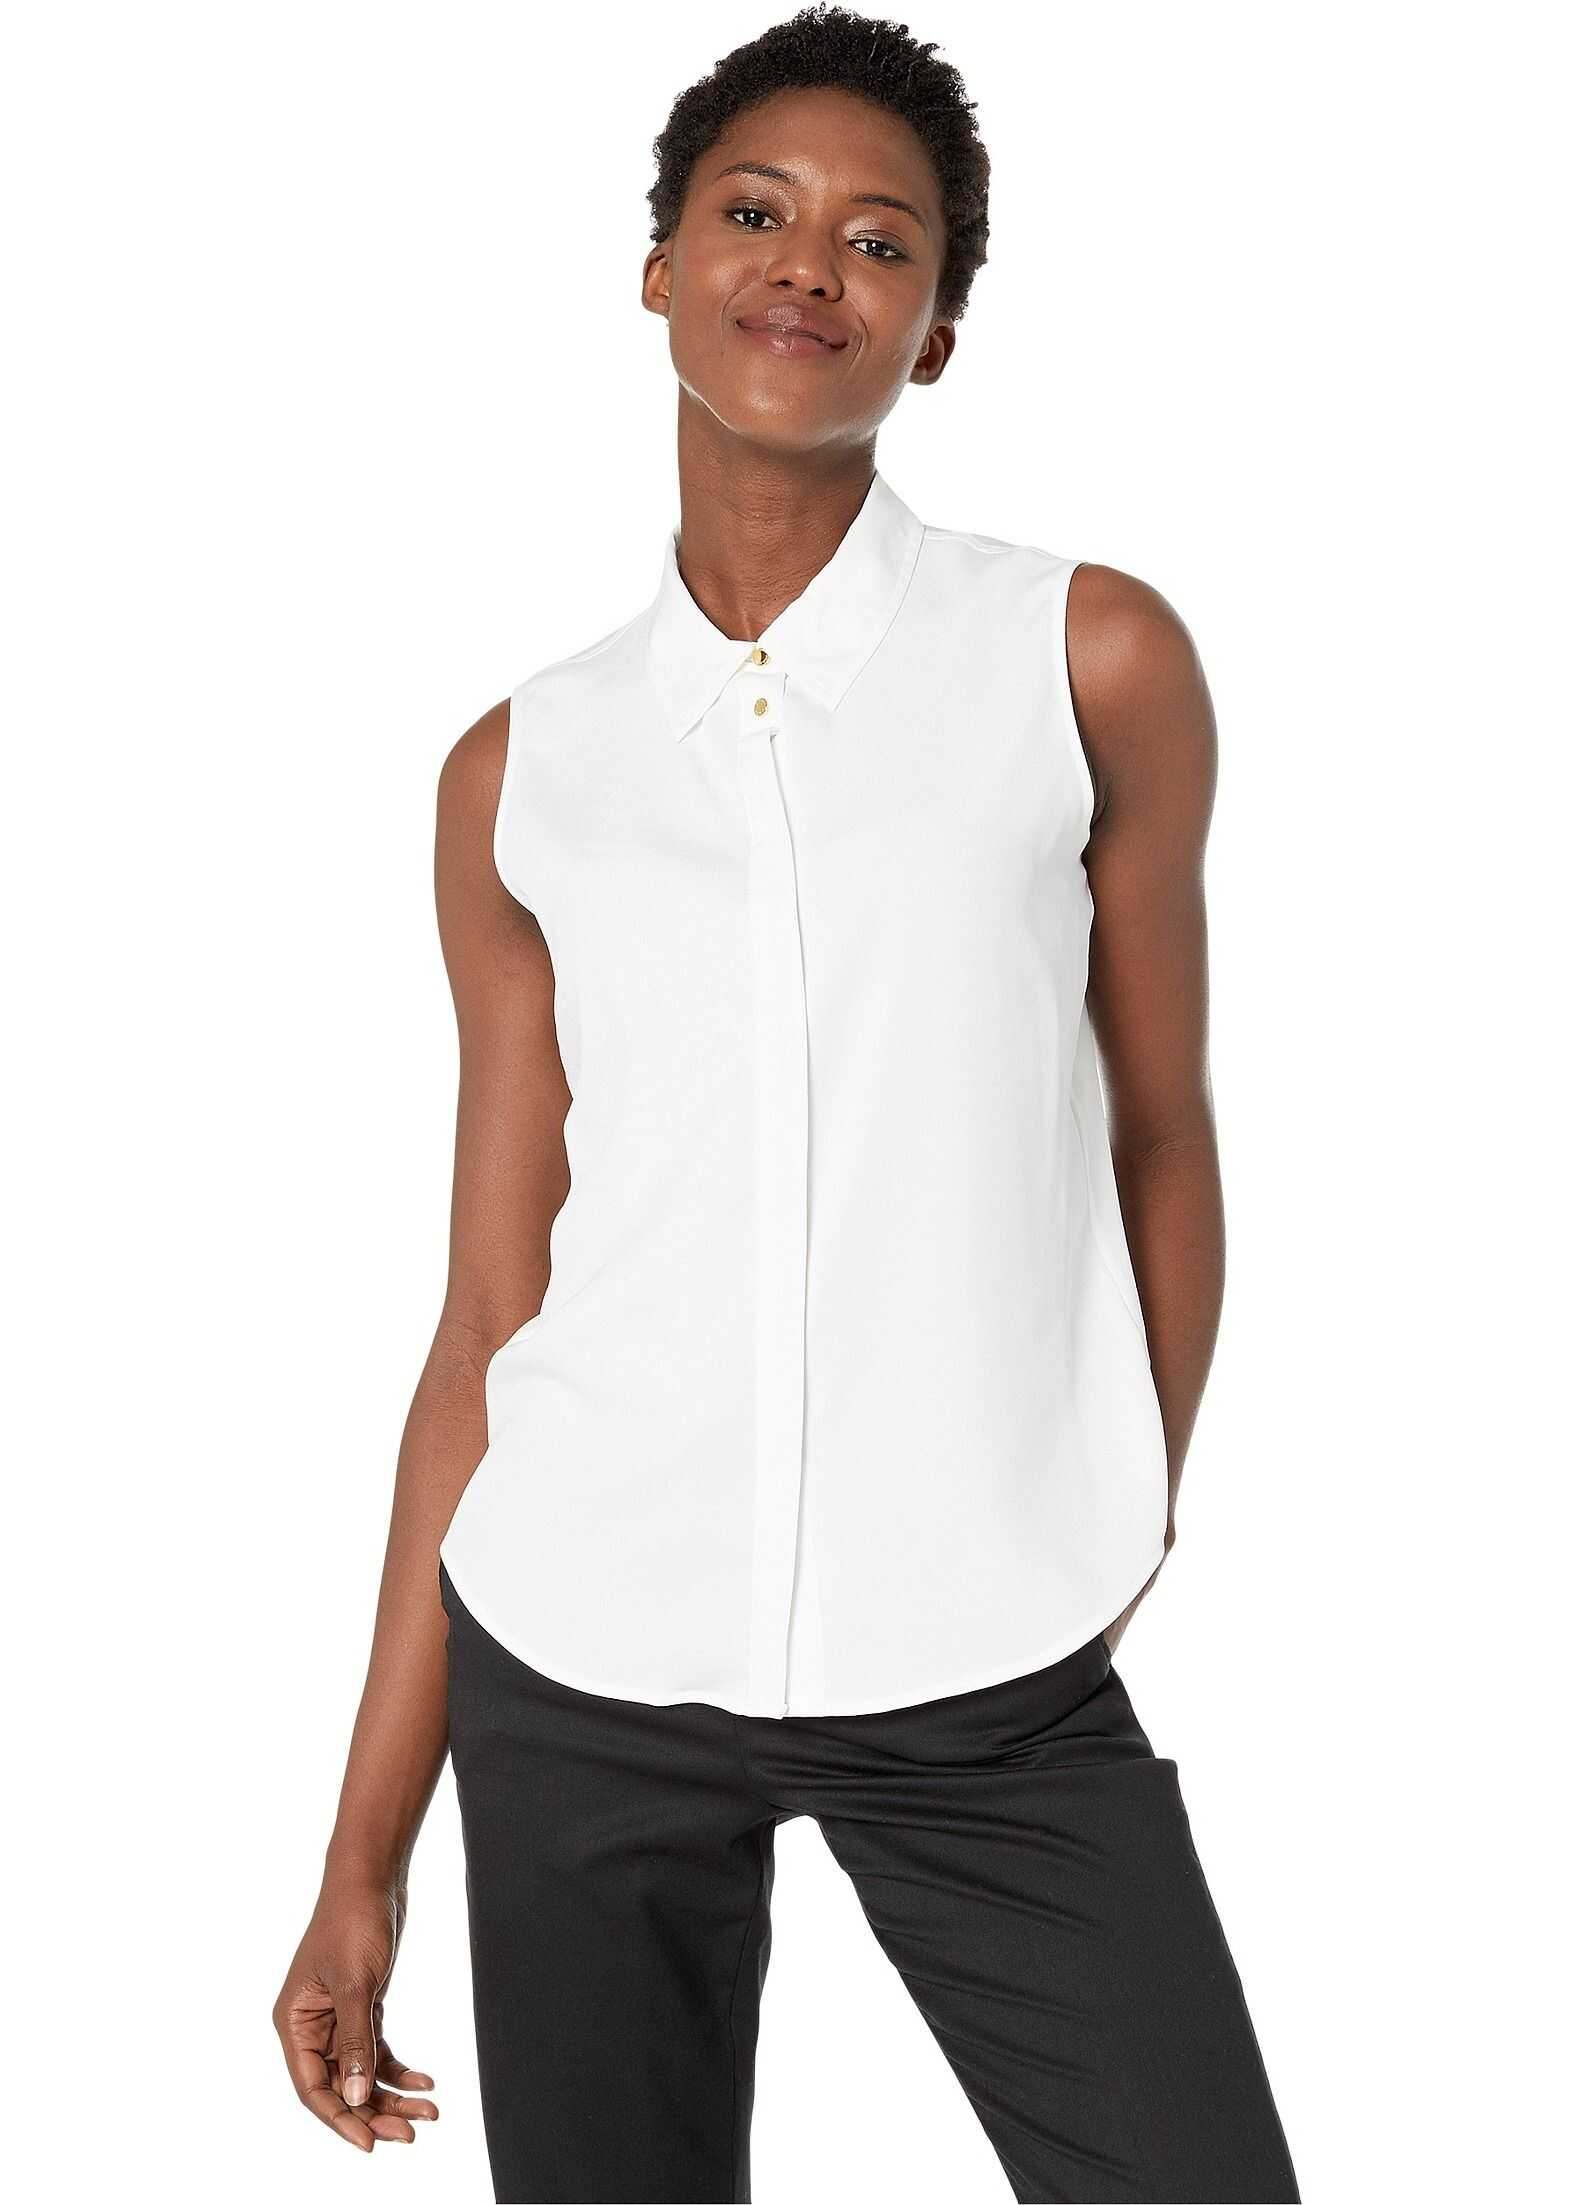 Calvin Klein Sleeveless Button-Down Woven White